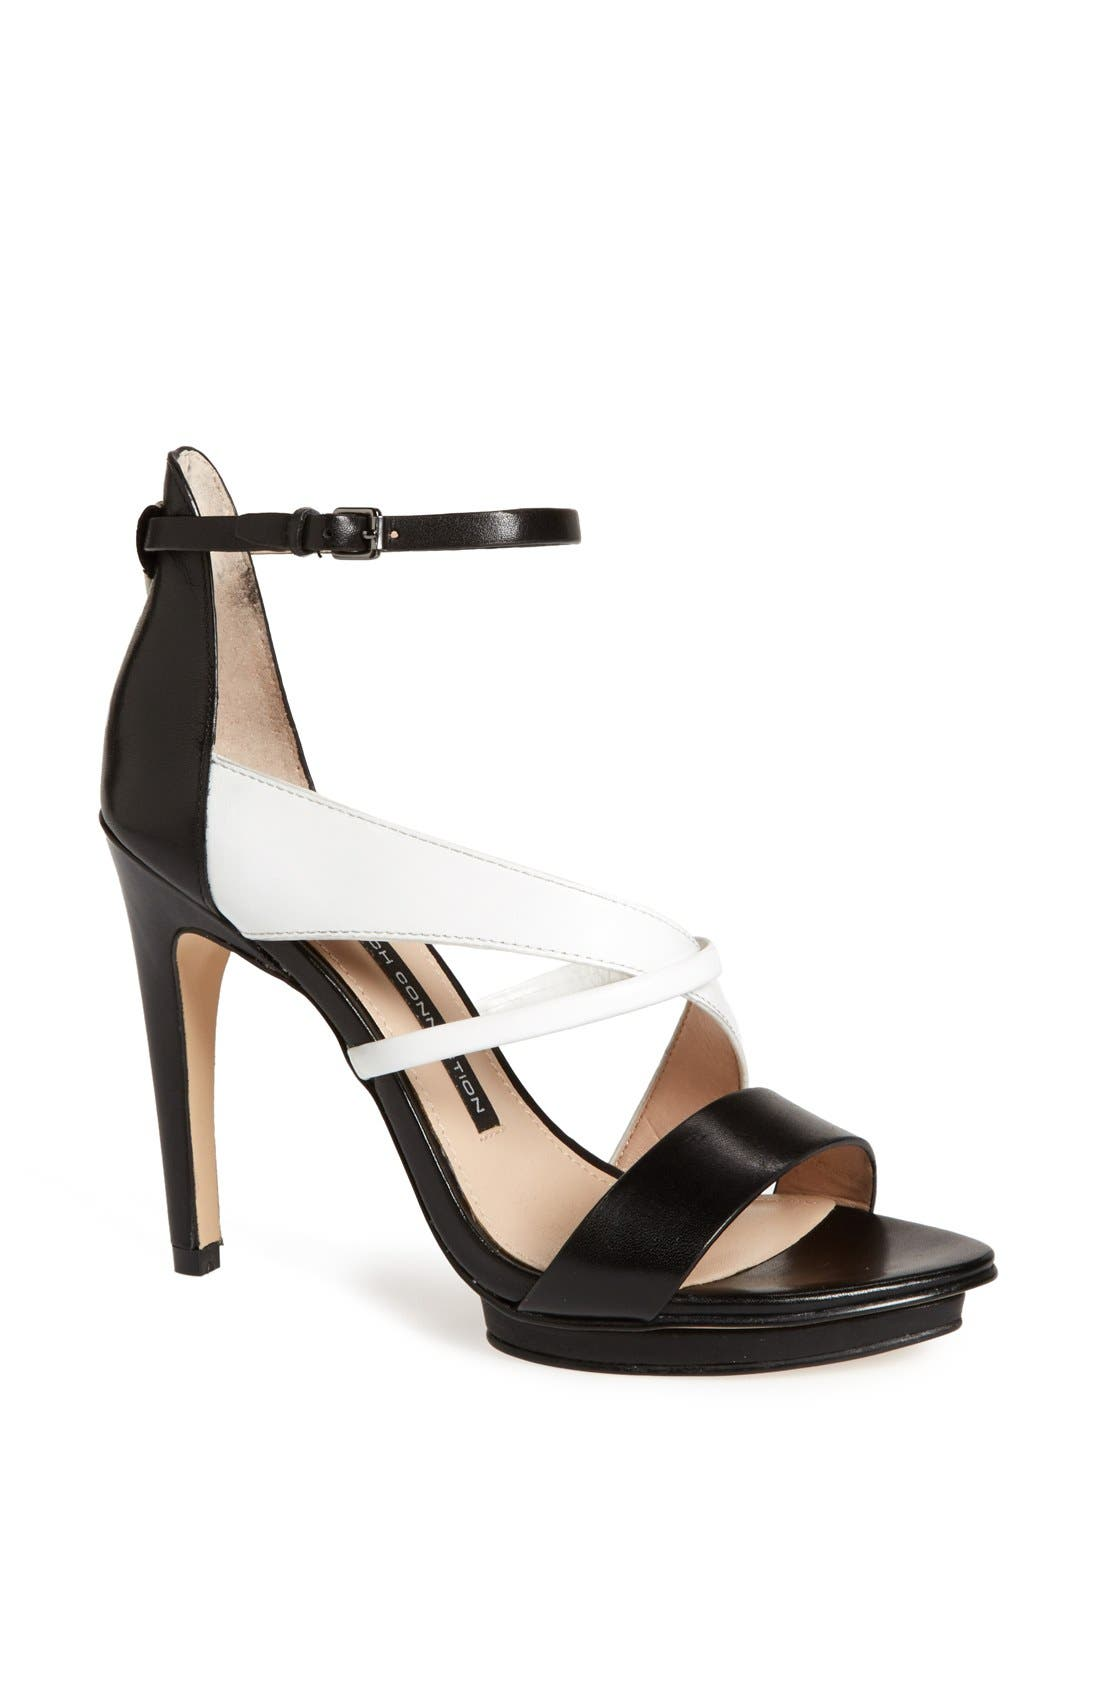 Main Image - French Connection 'Wendi' Sandal